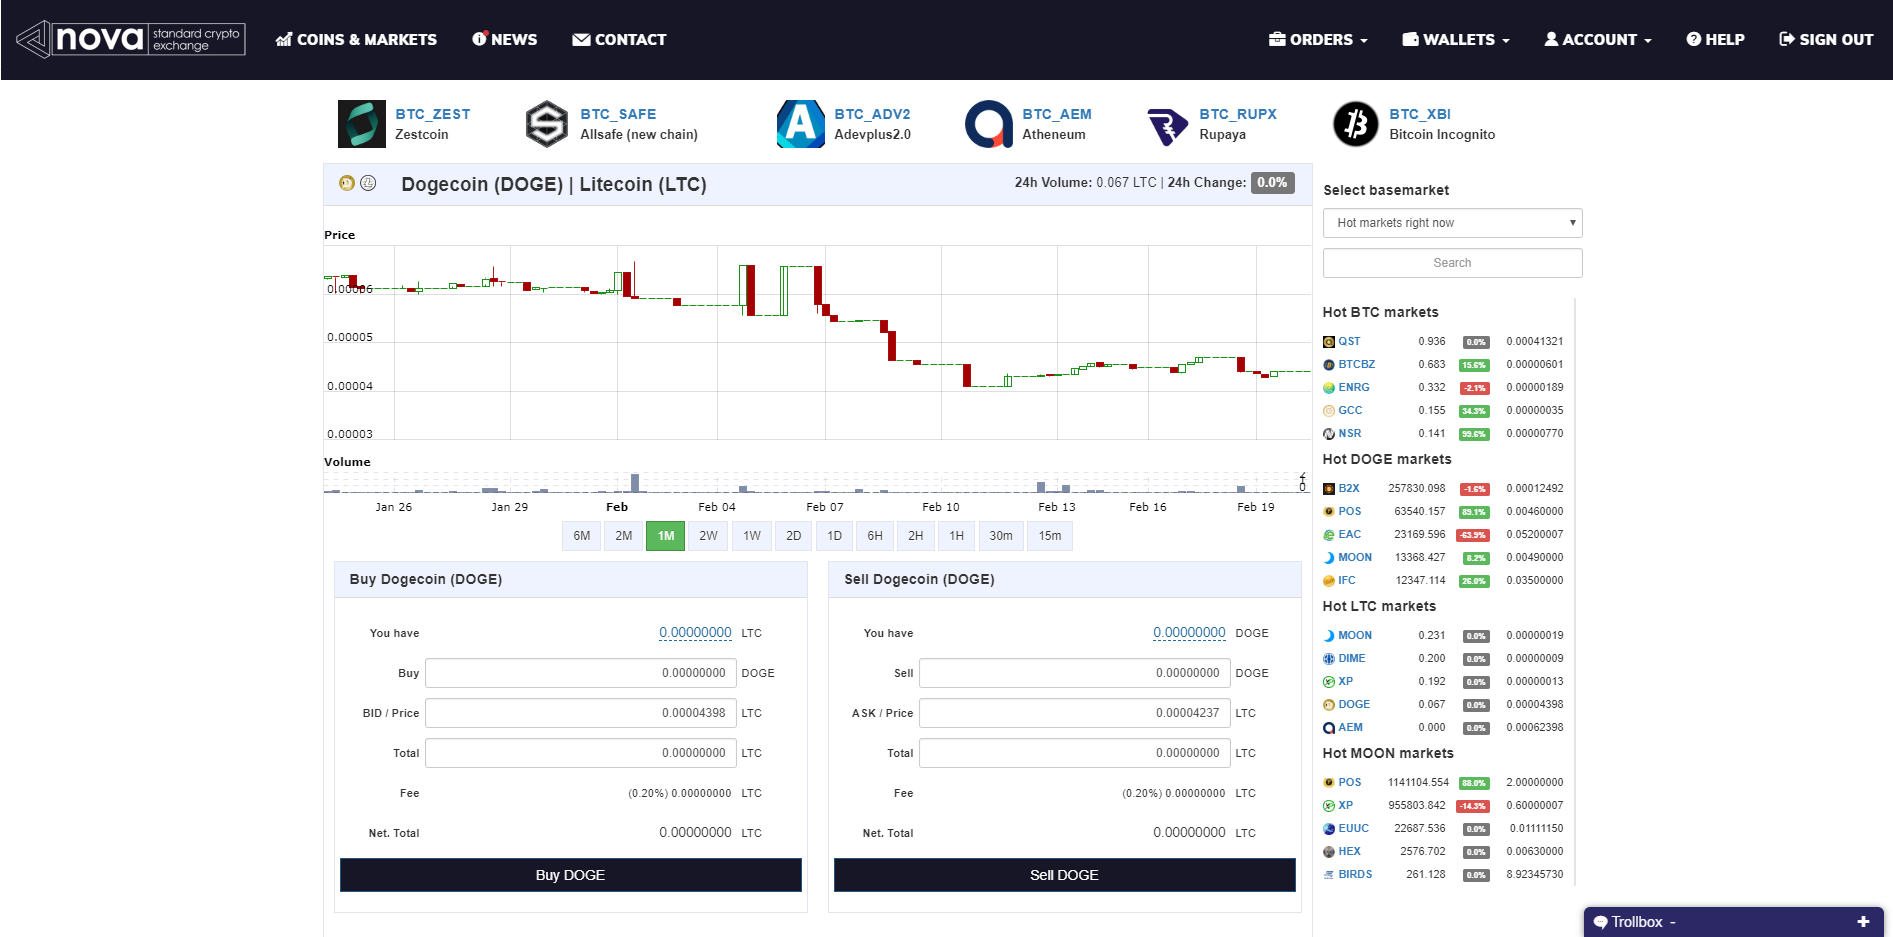 Nova Exchange Trading View